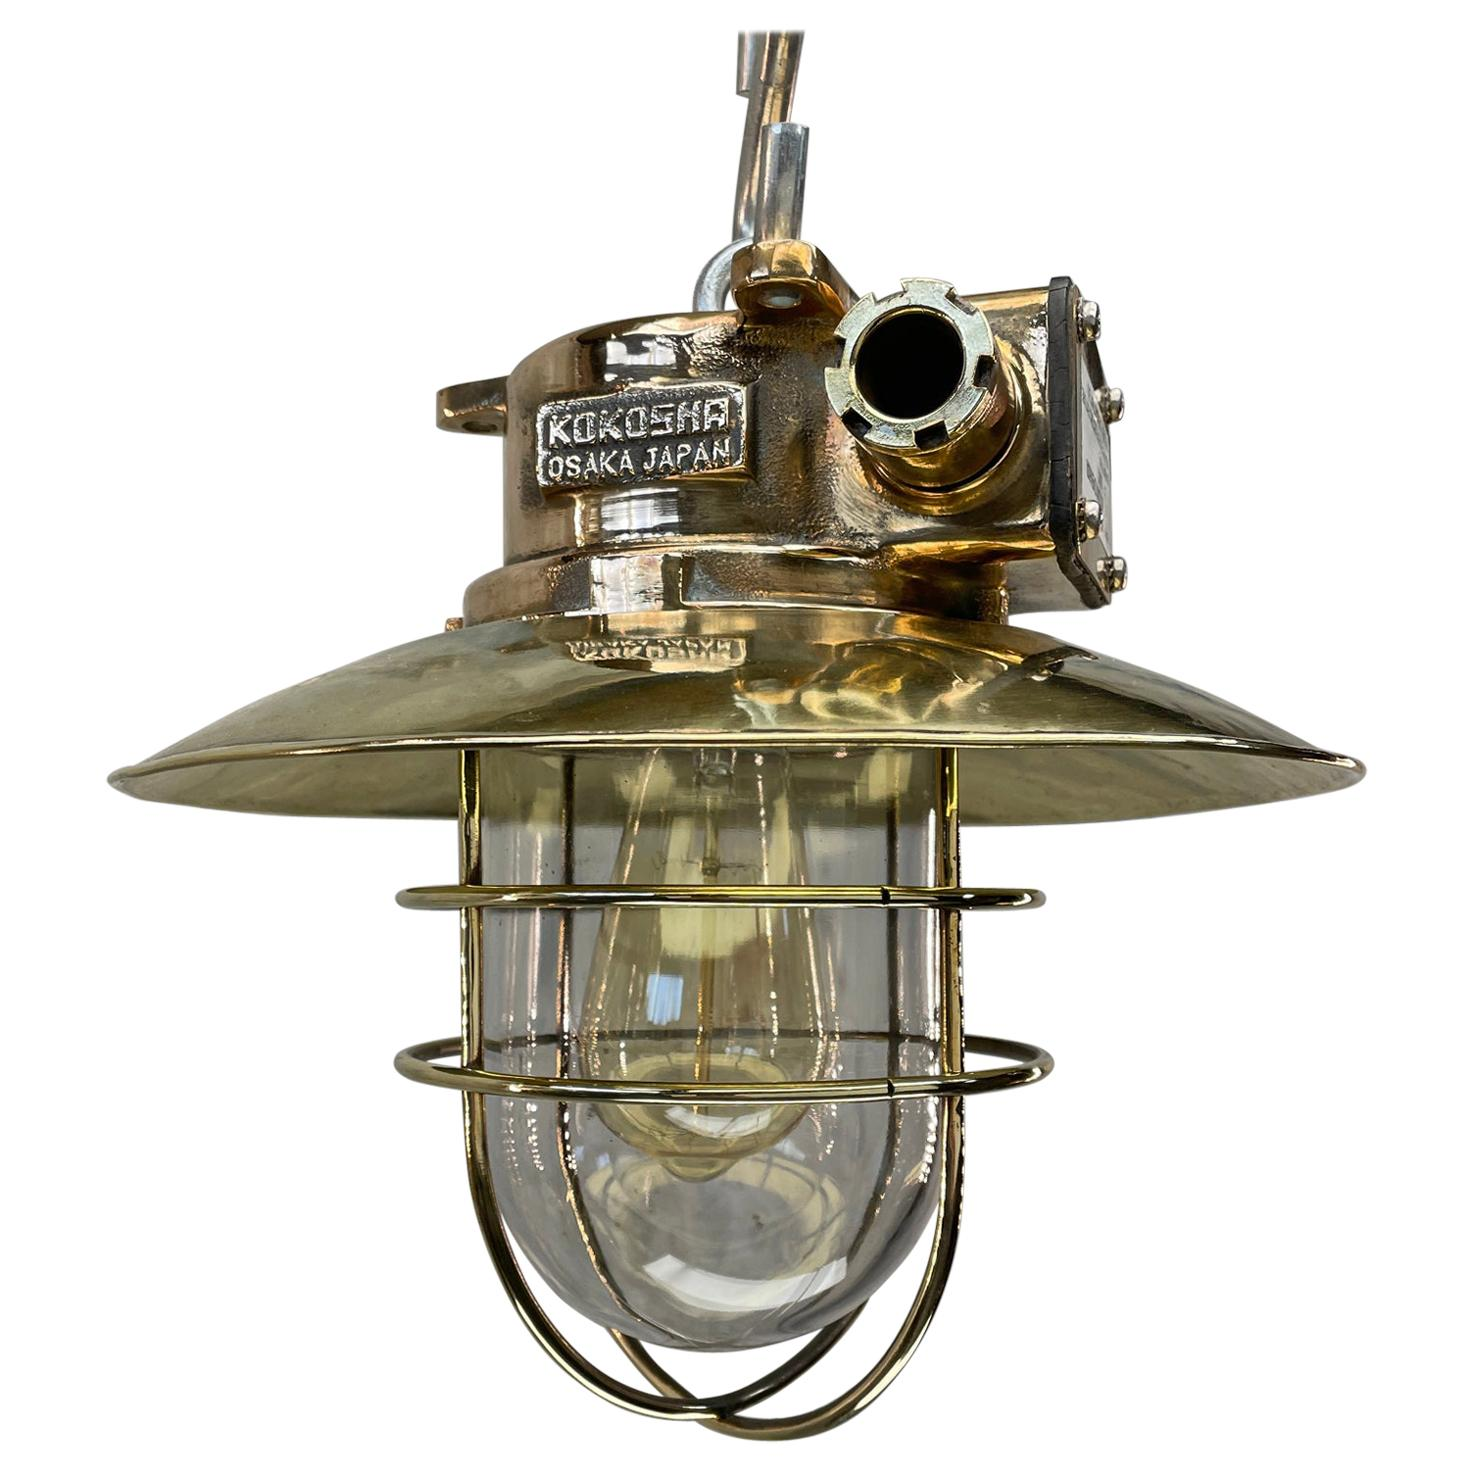 1980s Japanese Bronze Industrial Ceiling Light Brass Shade & Glass Dome U/L